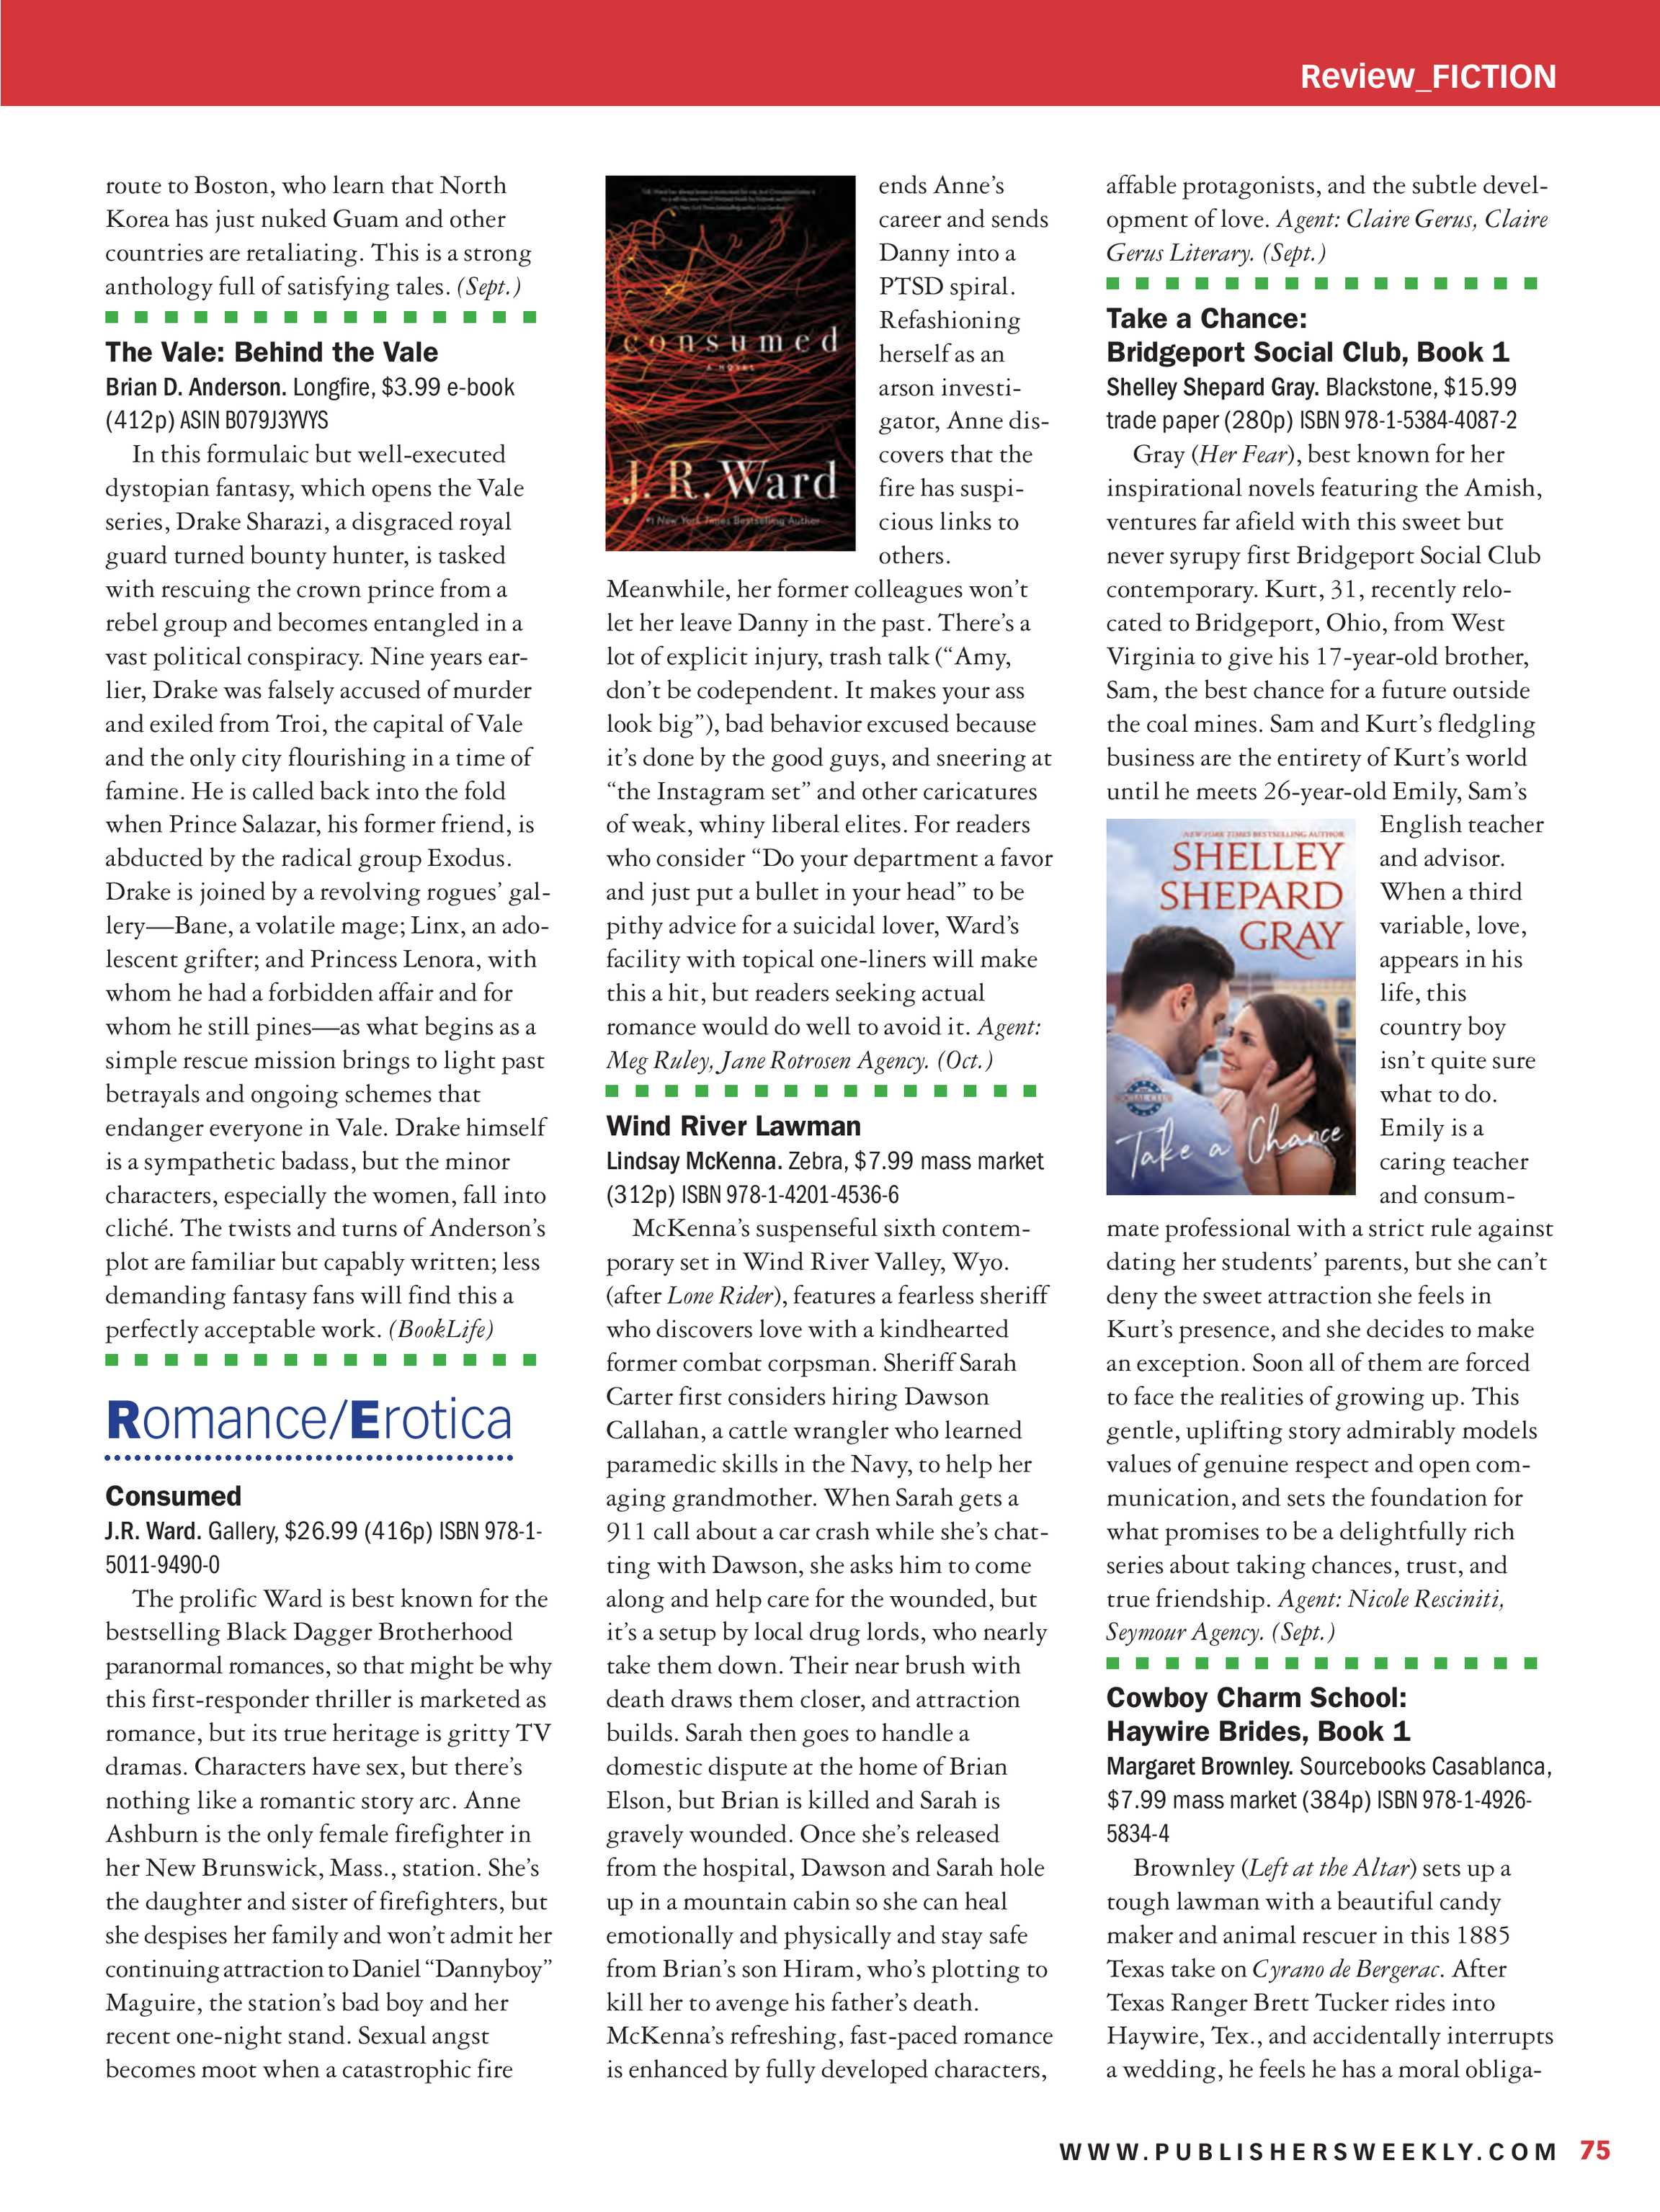 publishers weekly july 9 2018 page 75